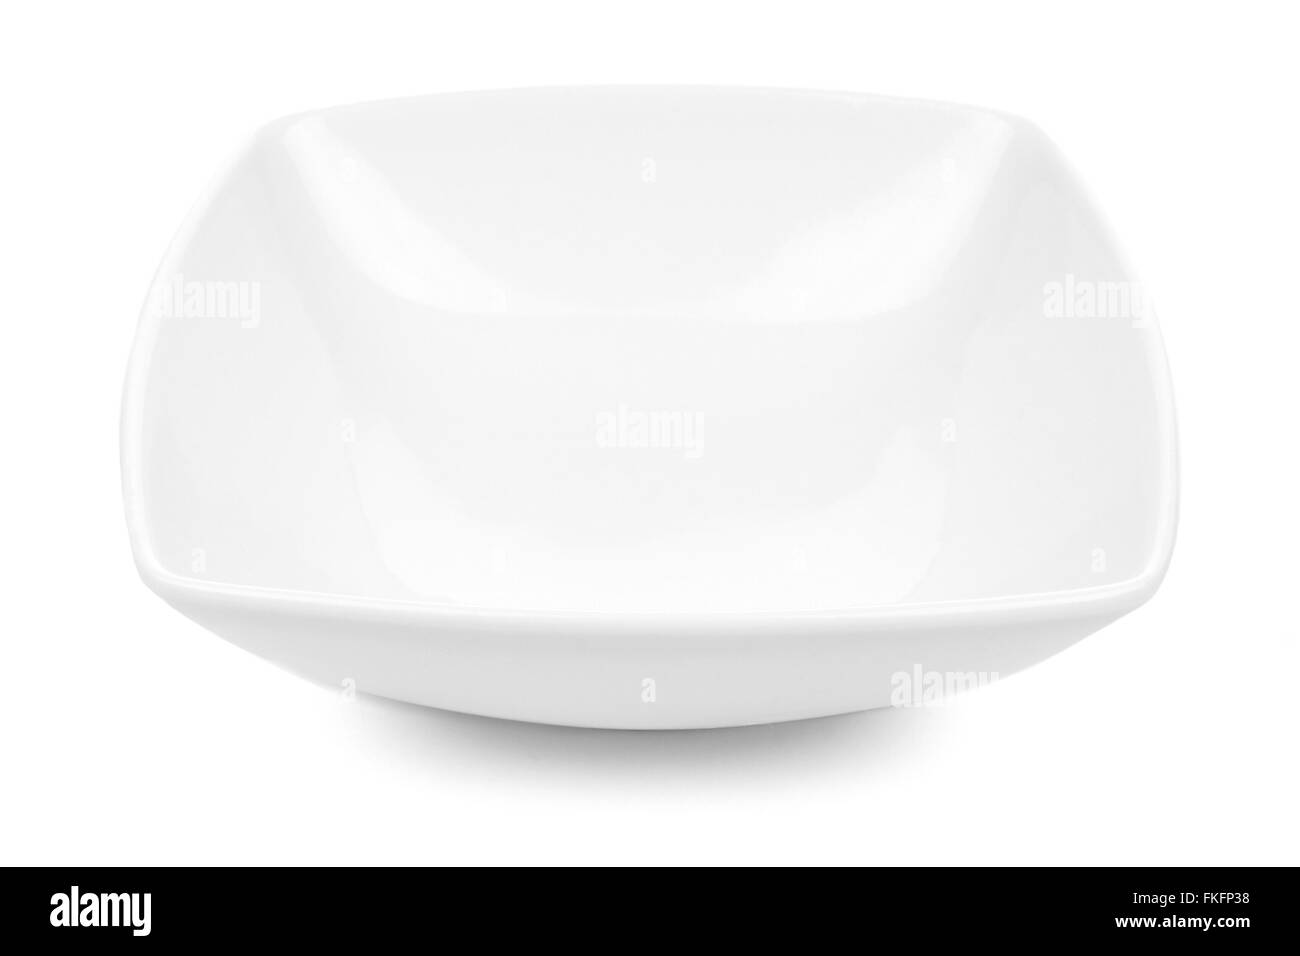 White rounded square bowl isolated on a white background - Stock Image